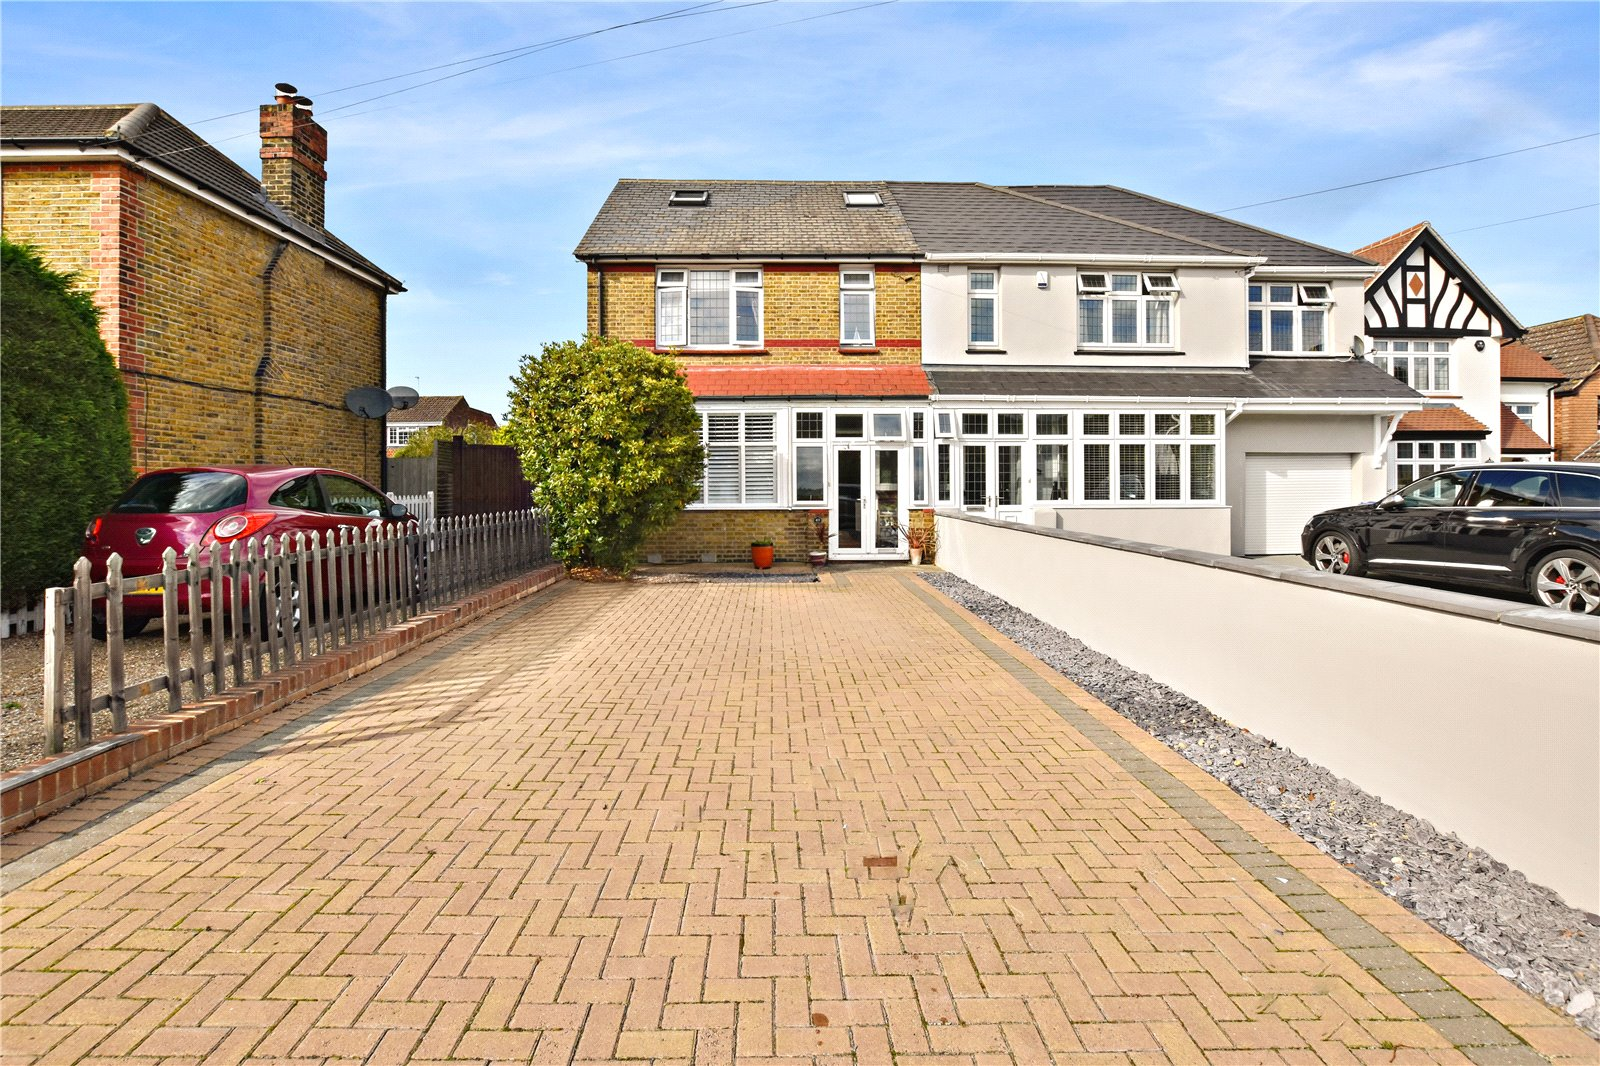 Mayplace Road East, Bexleyheath, Kent, DA7